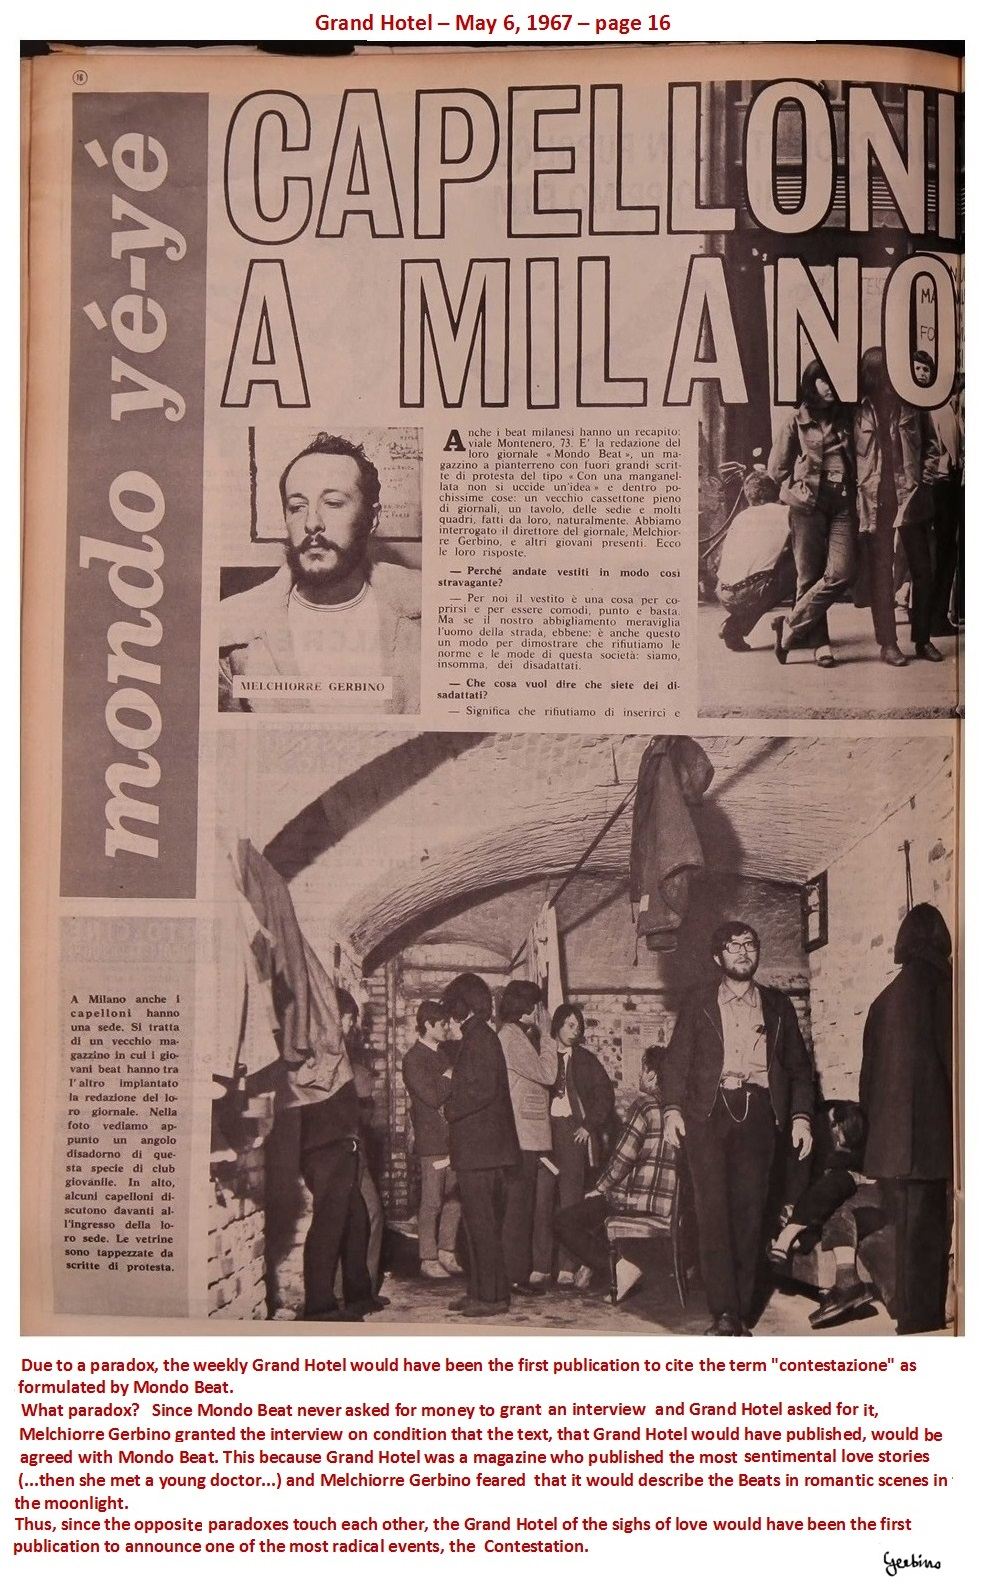 This article appeared on May 6, 1967 (1)